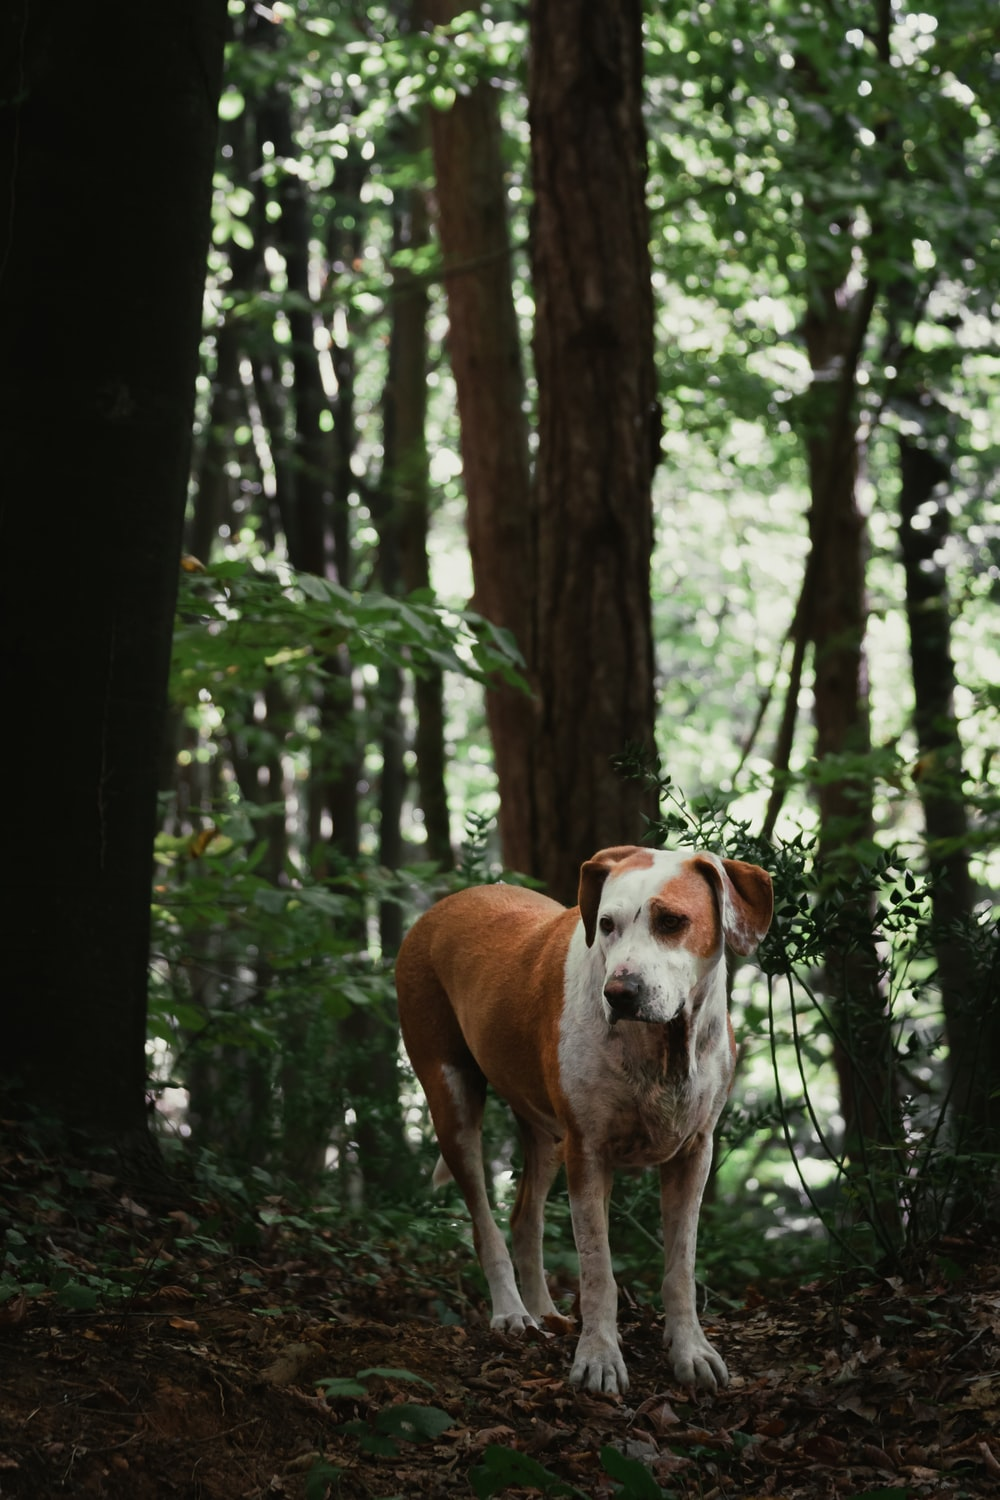 white and brown dog standing in forest